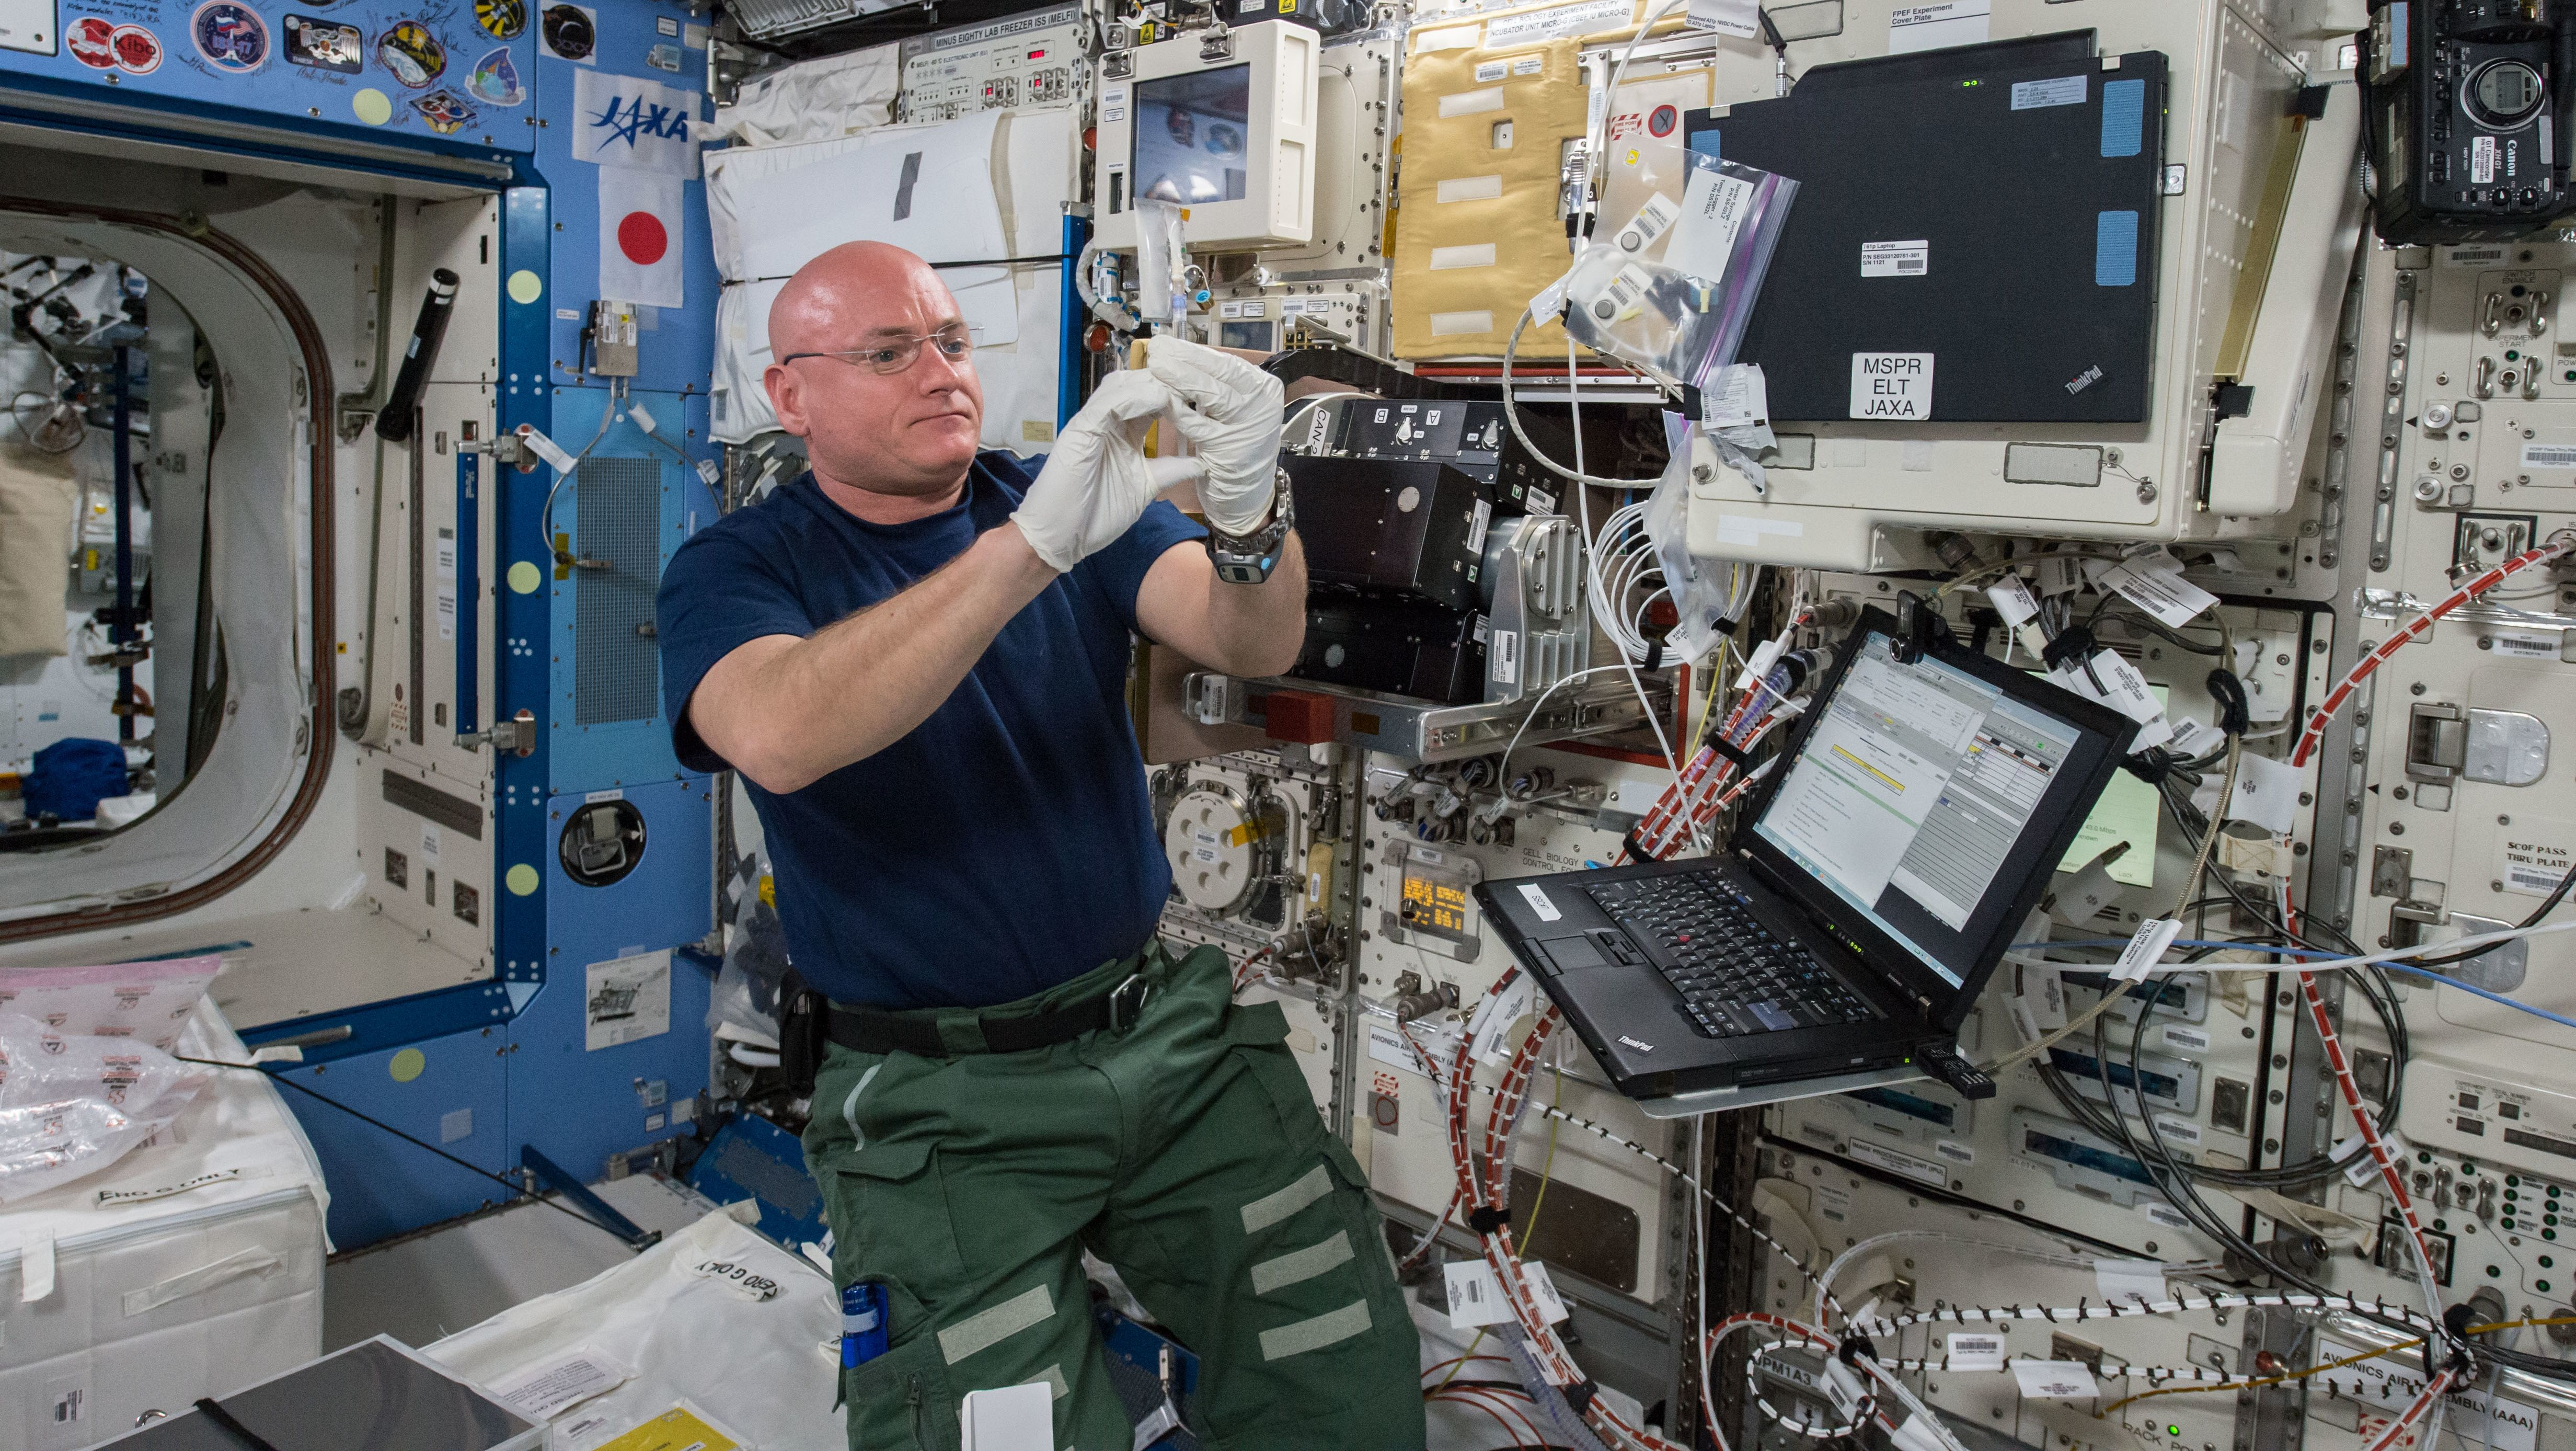 The Fascinating Device Astronauts Use to Weigh Themselves in Space - Mental Floss